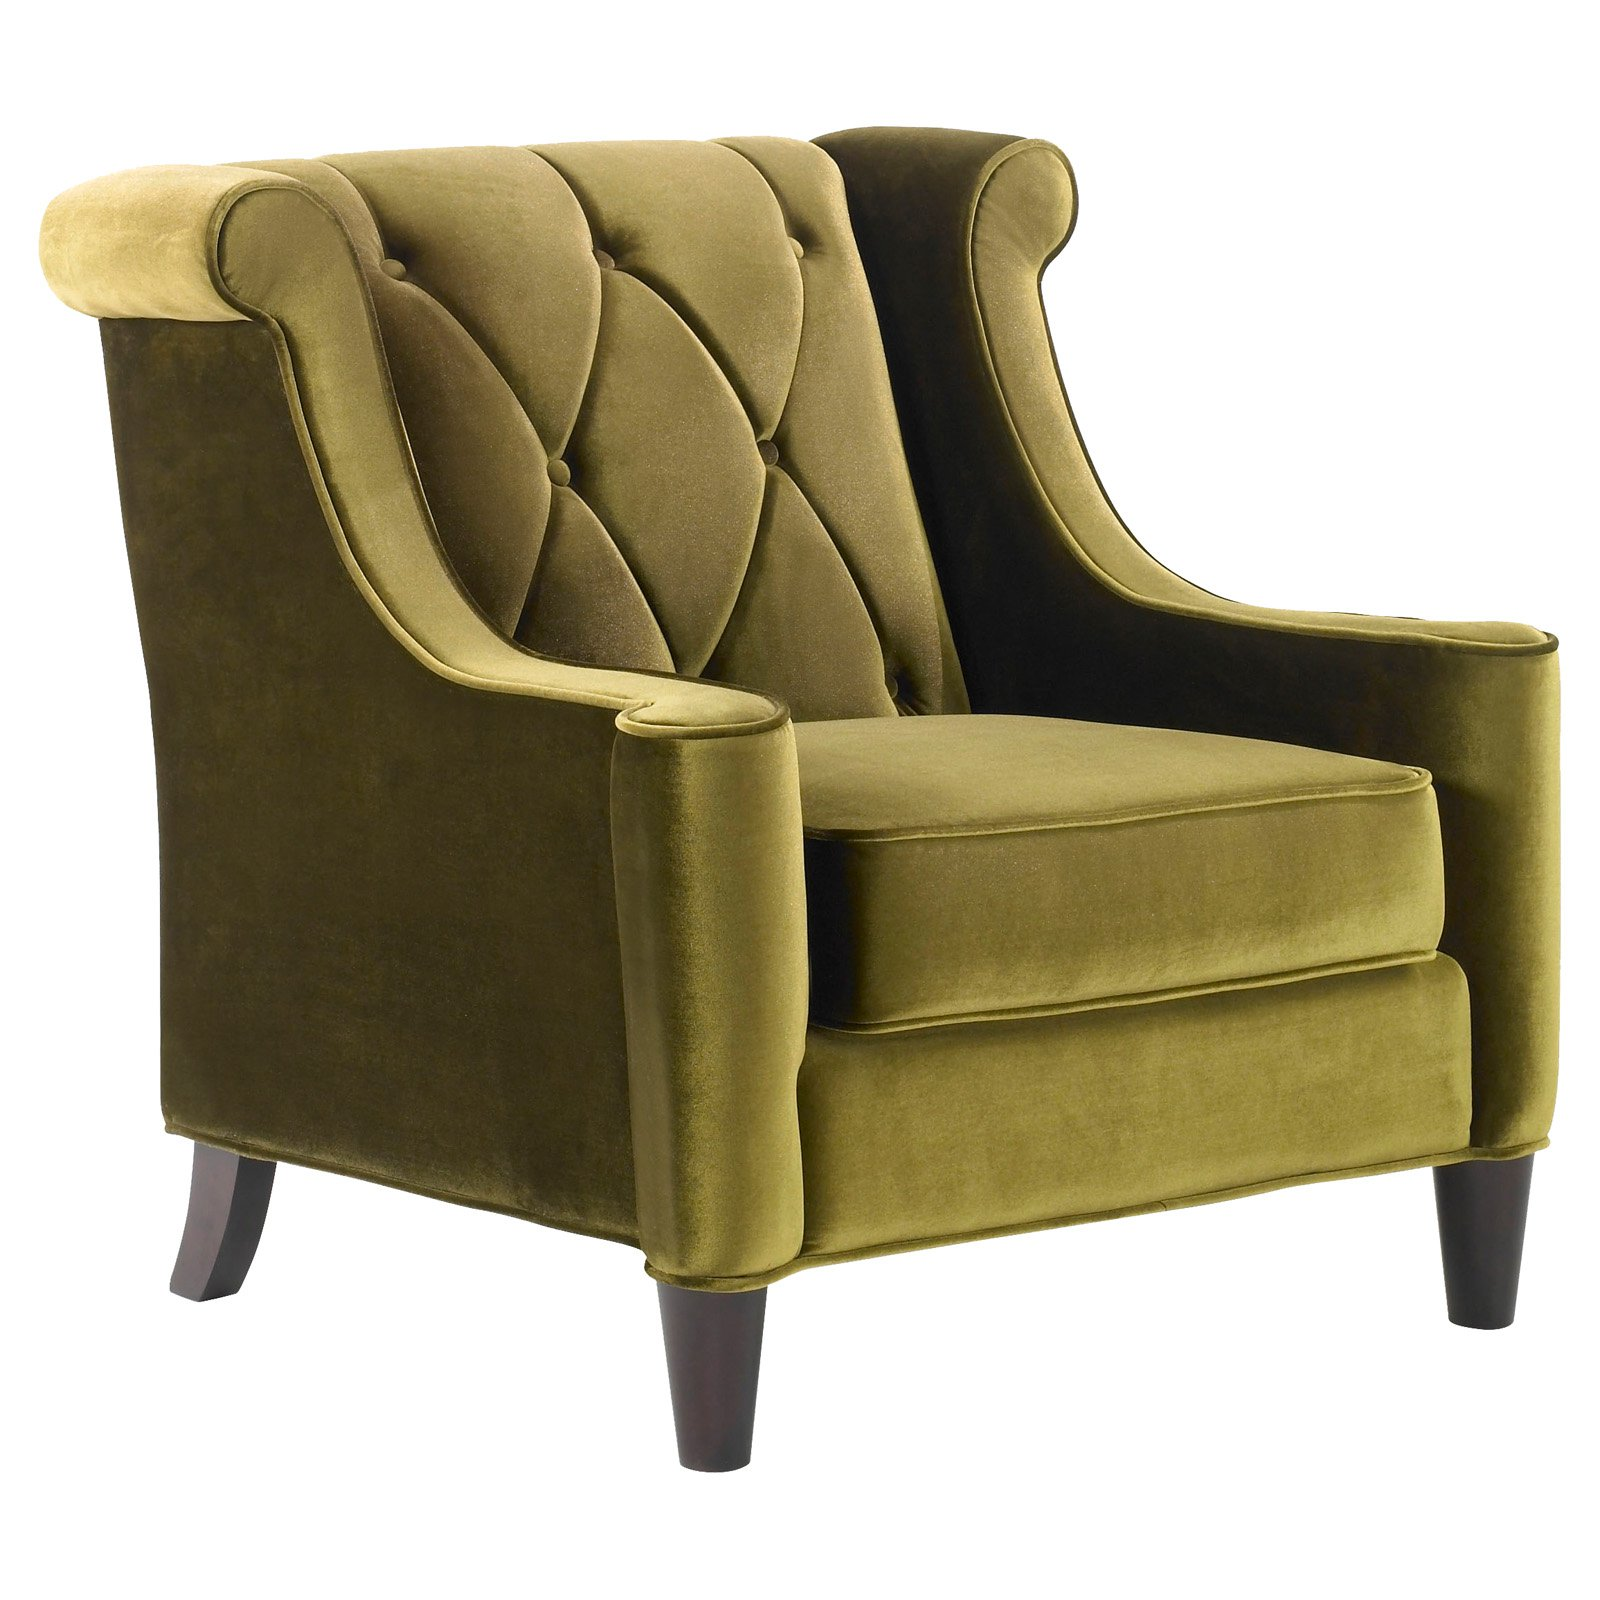 Armen Living Barrister Chair, Green Velvet with Green Piping